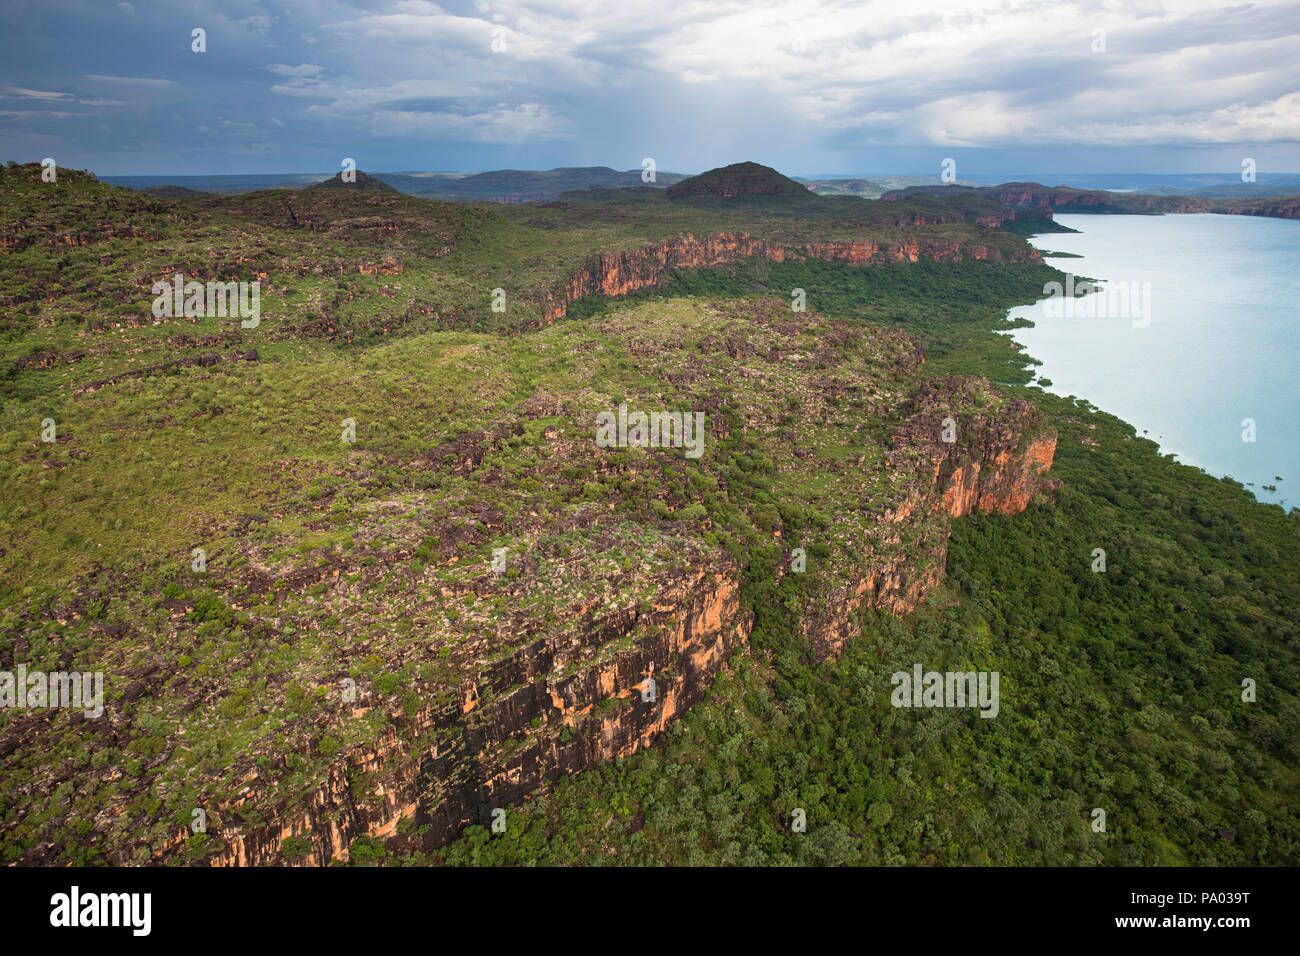 Aerial views of the Hunter River valley in the Kimberley, Western Australia - Stock Image